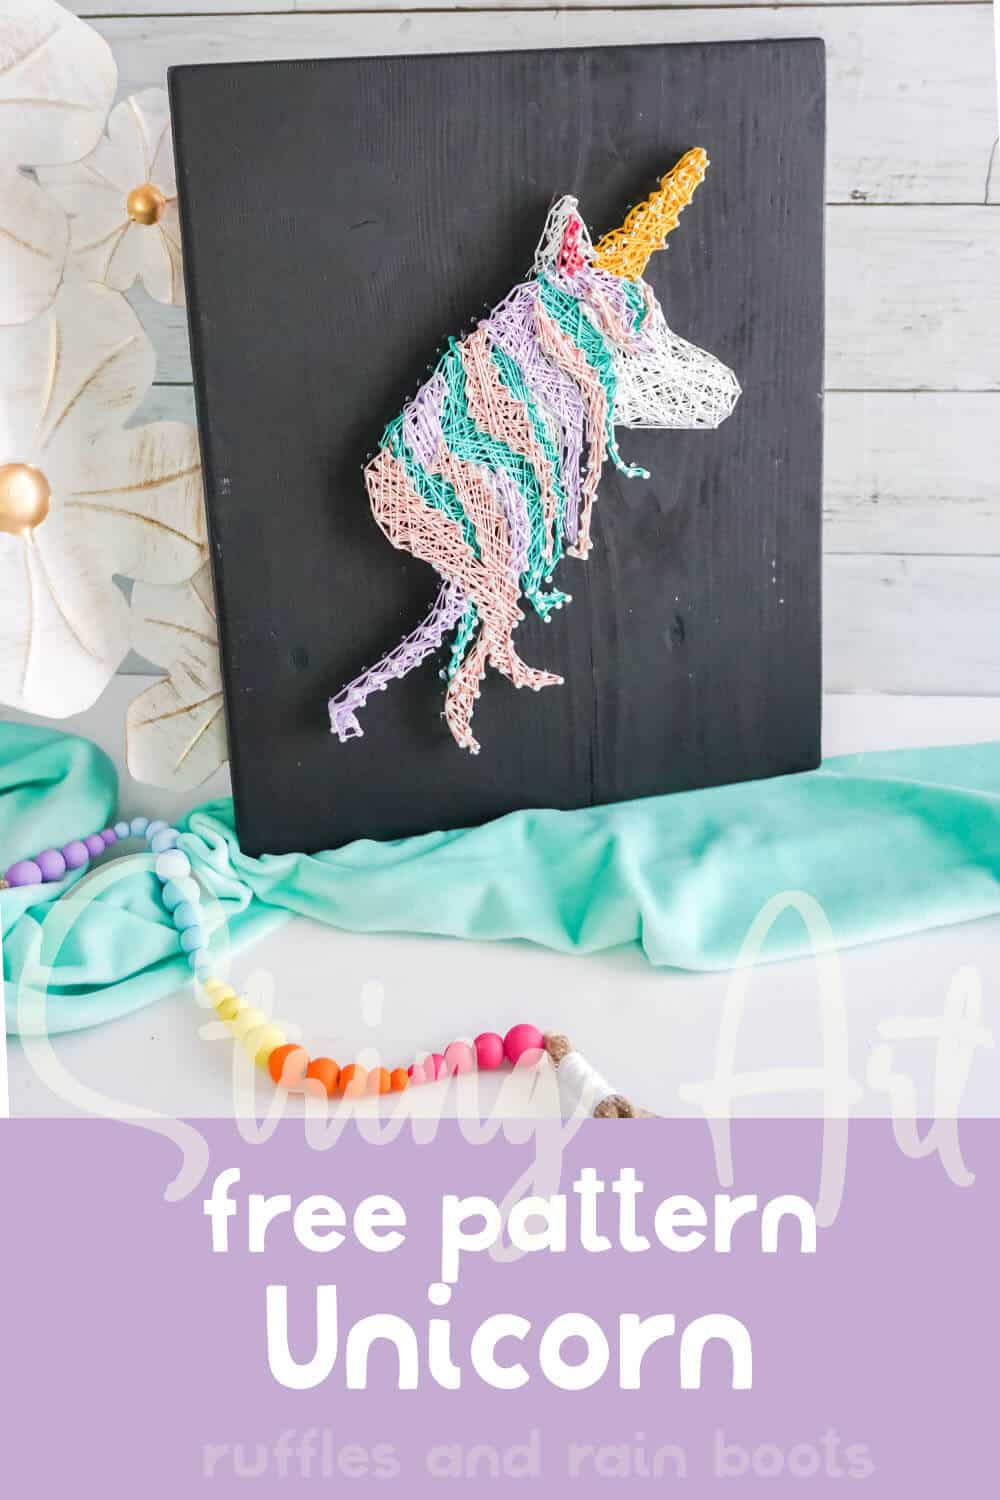 easy string art with unicorn with text which reads string art free pattern unicorn